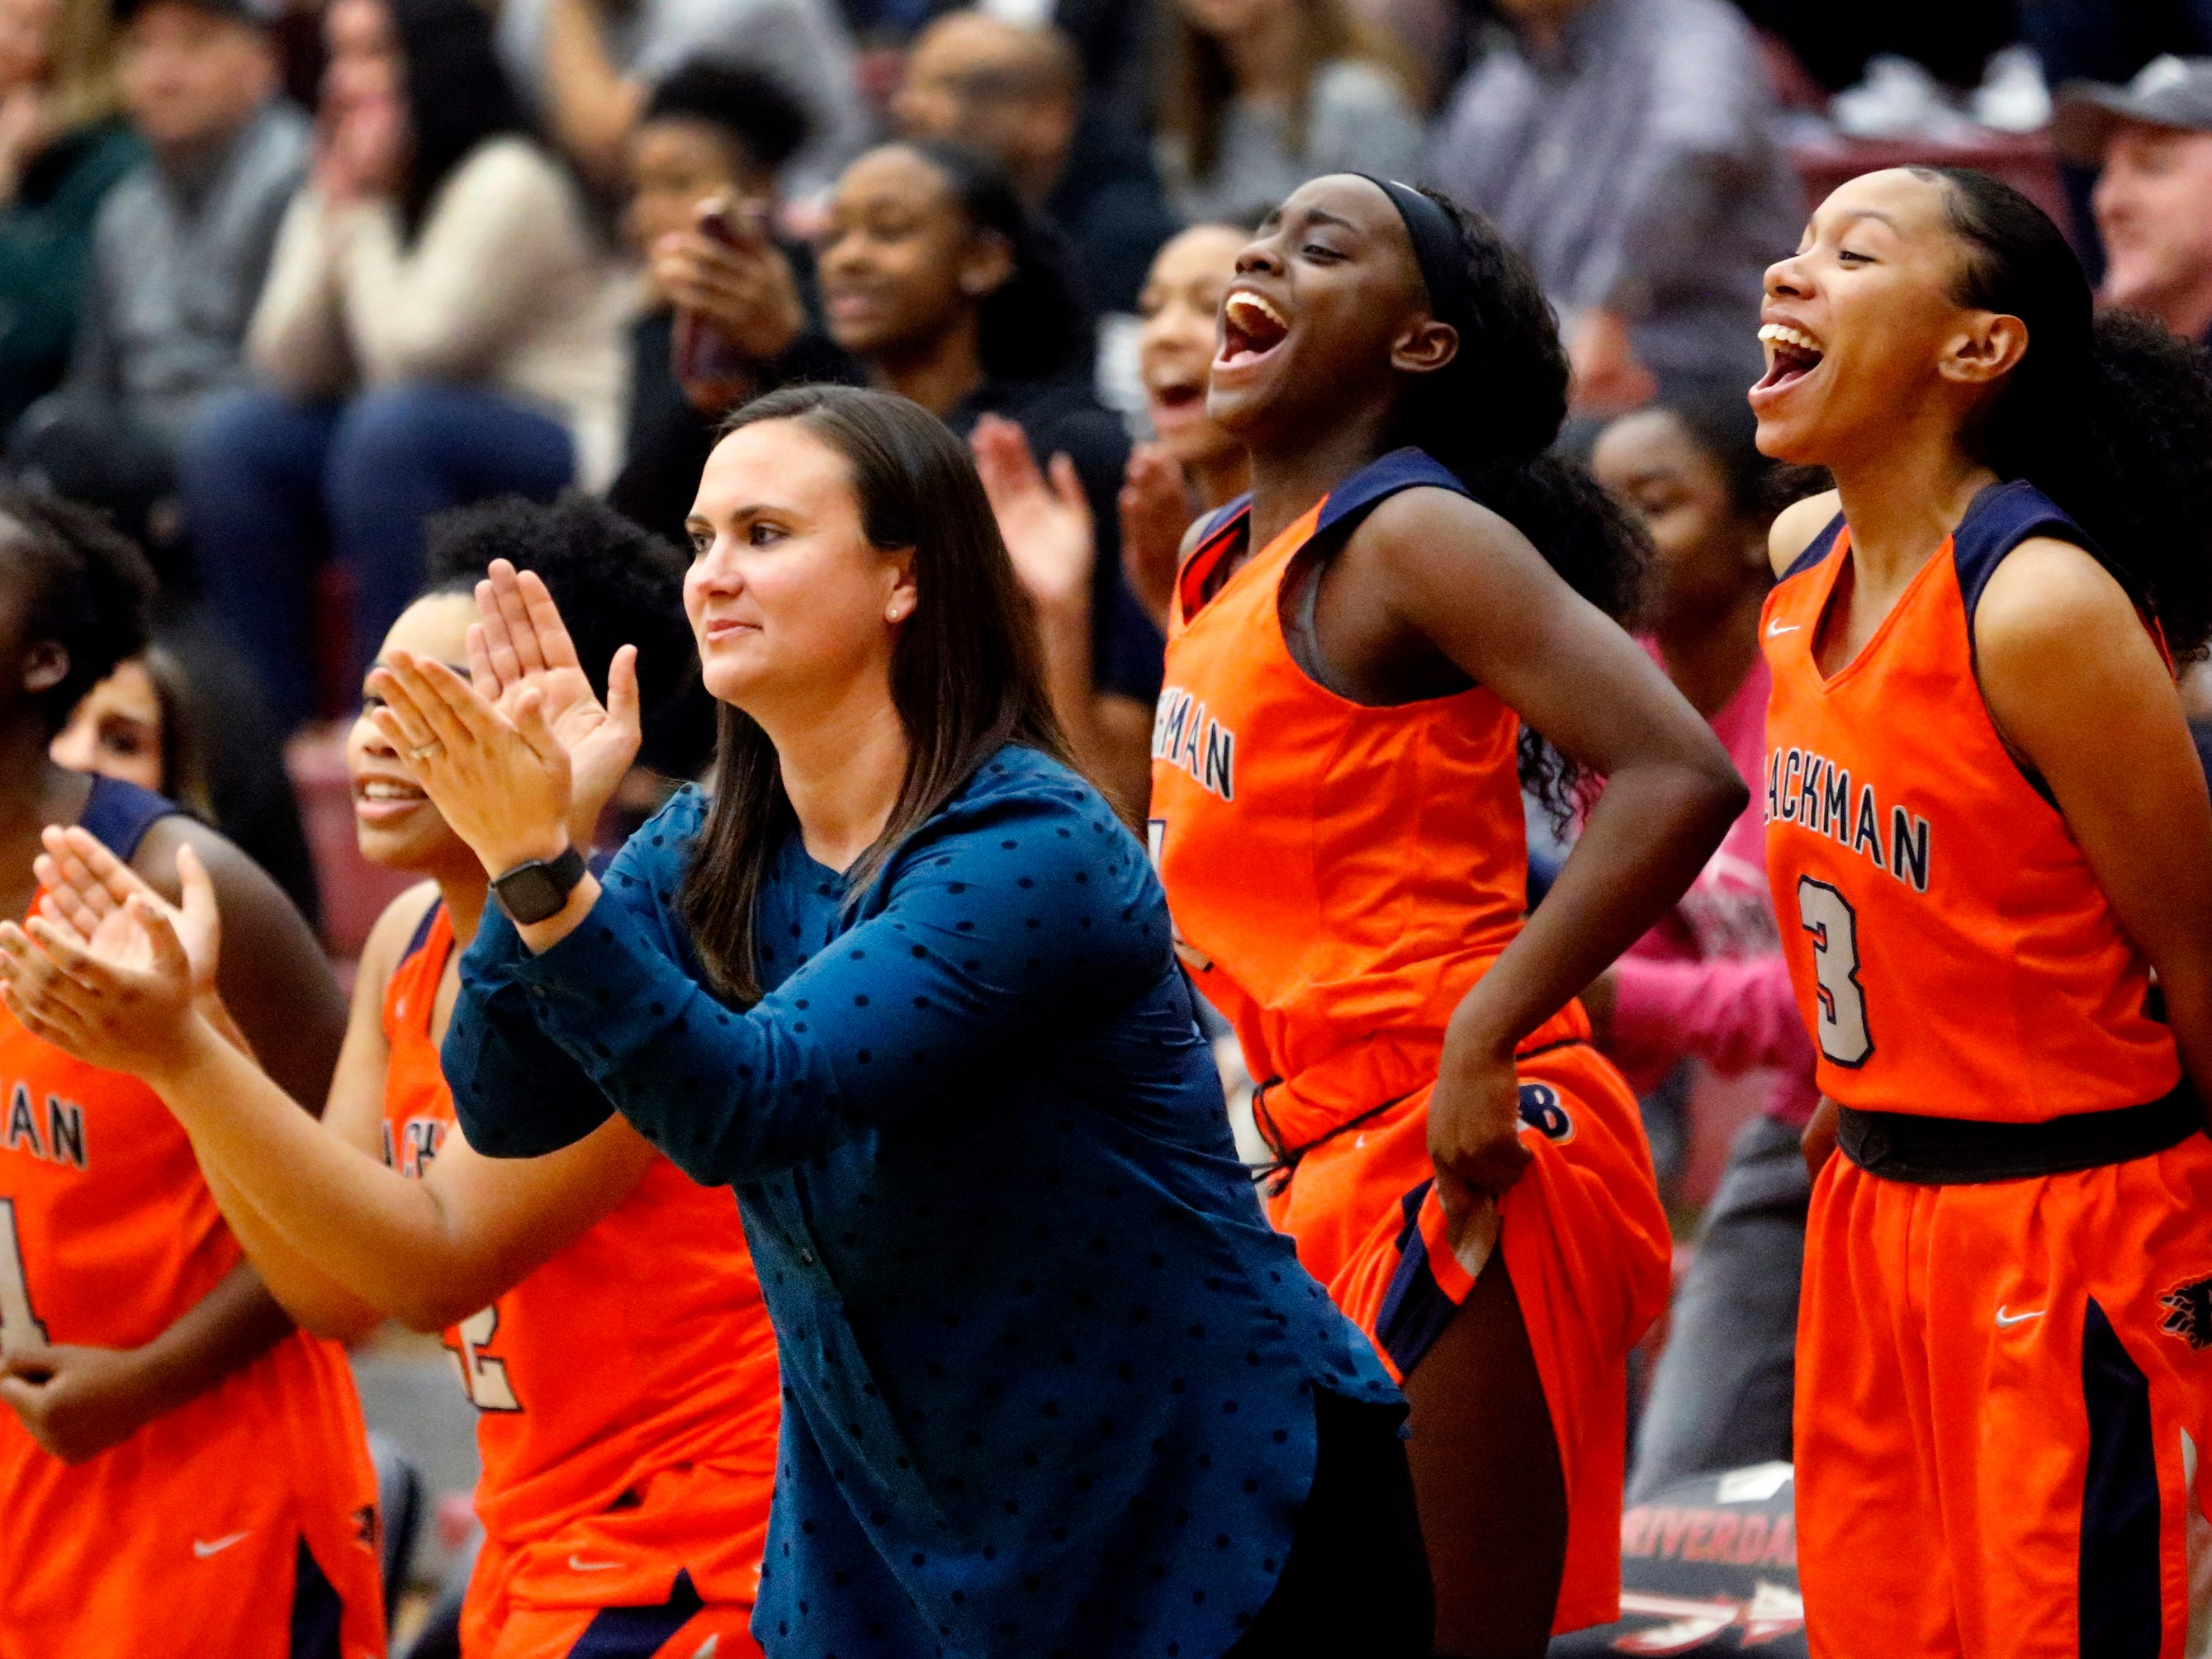 Blackman's head coach Wendi Scott cheers for her team on the sidelines of the game against Riverdale on Tuesday Jan. 8, 2019